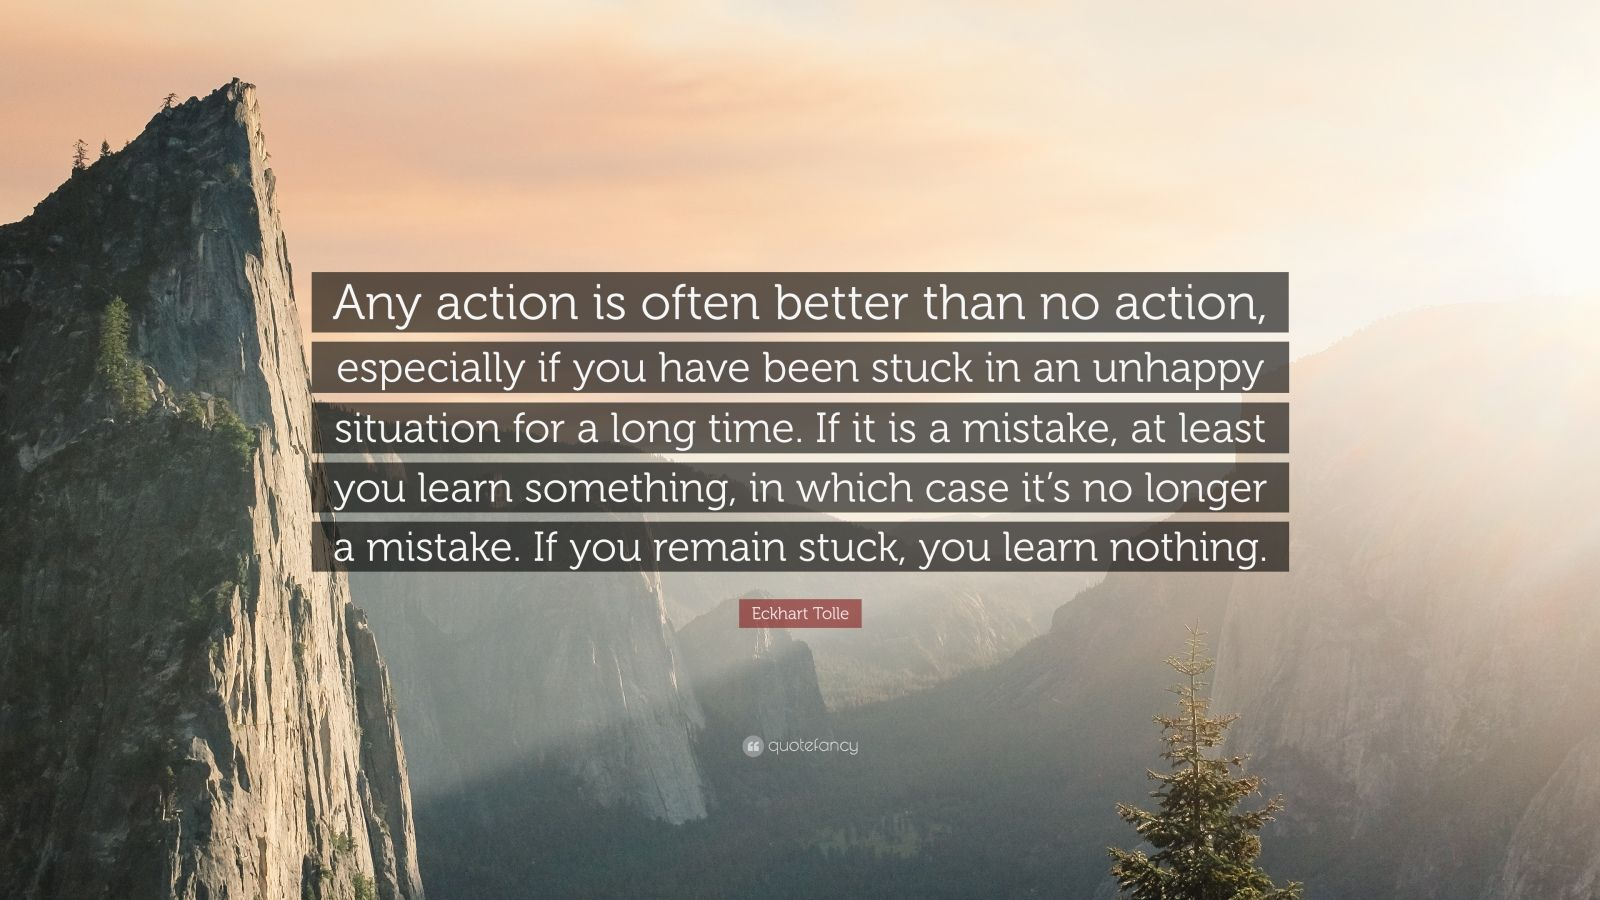 "Eckhart Tolle Quote: ""Any action is often better than no action, especially if you have been stuck in an unhappy situation for a long time. If it is a mistake, at least you learn something, in which case it's no longer a mistake. If you remain stuck, you learn nothing."""